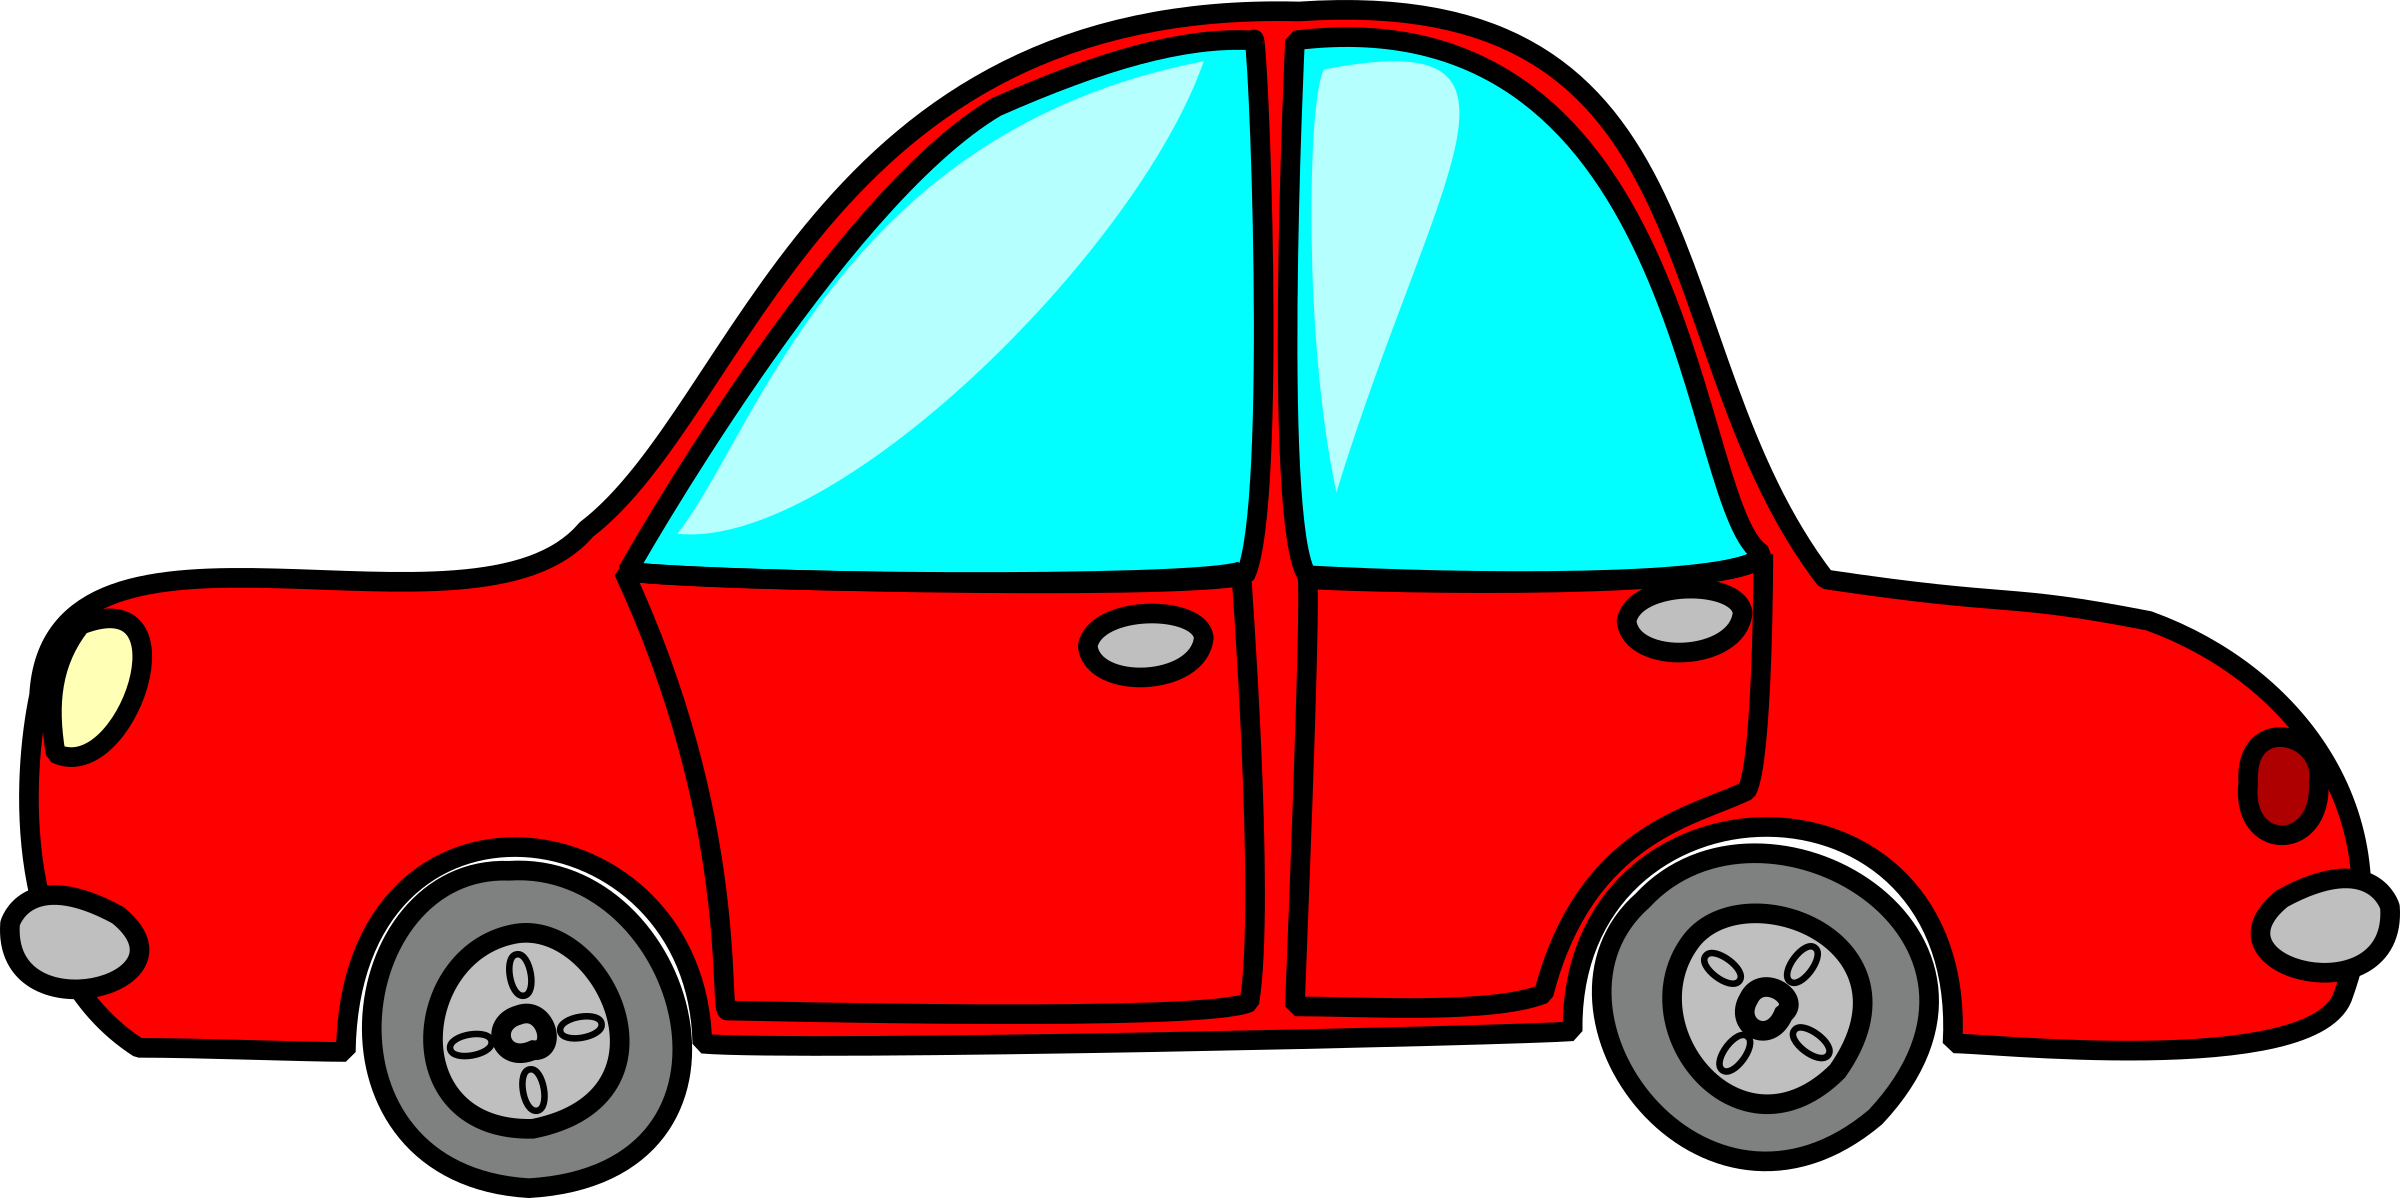 Toy car png. Cartoon cars clipart free